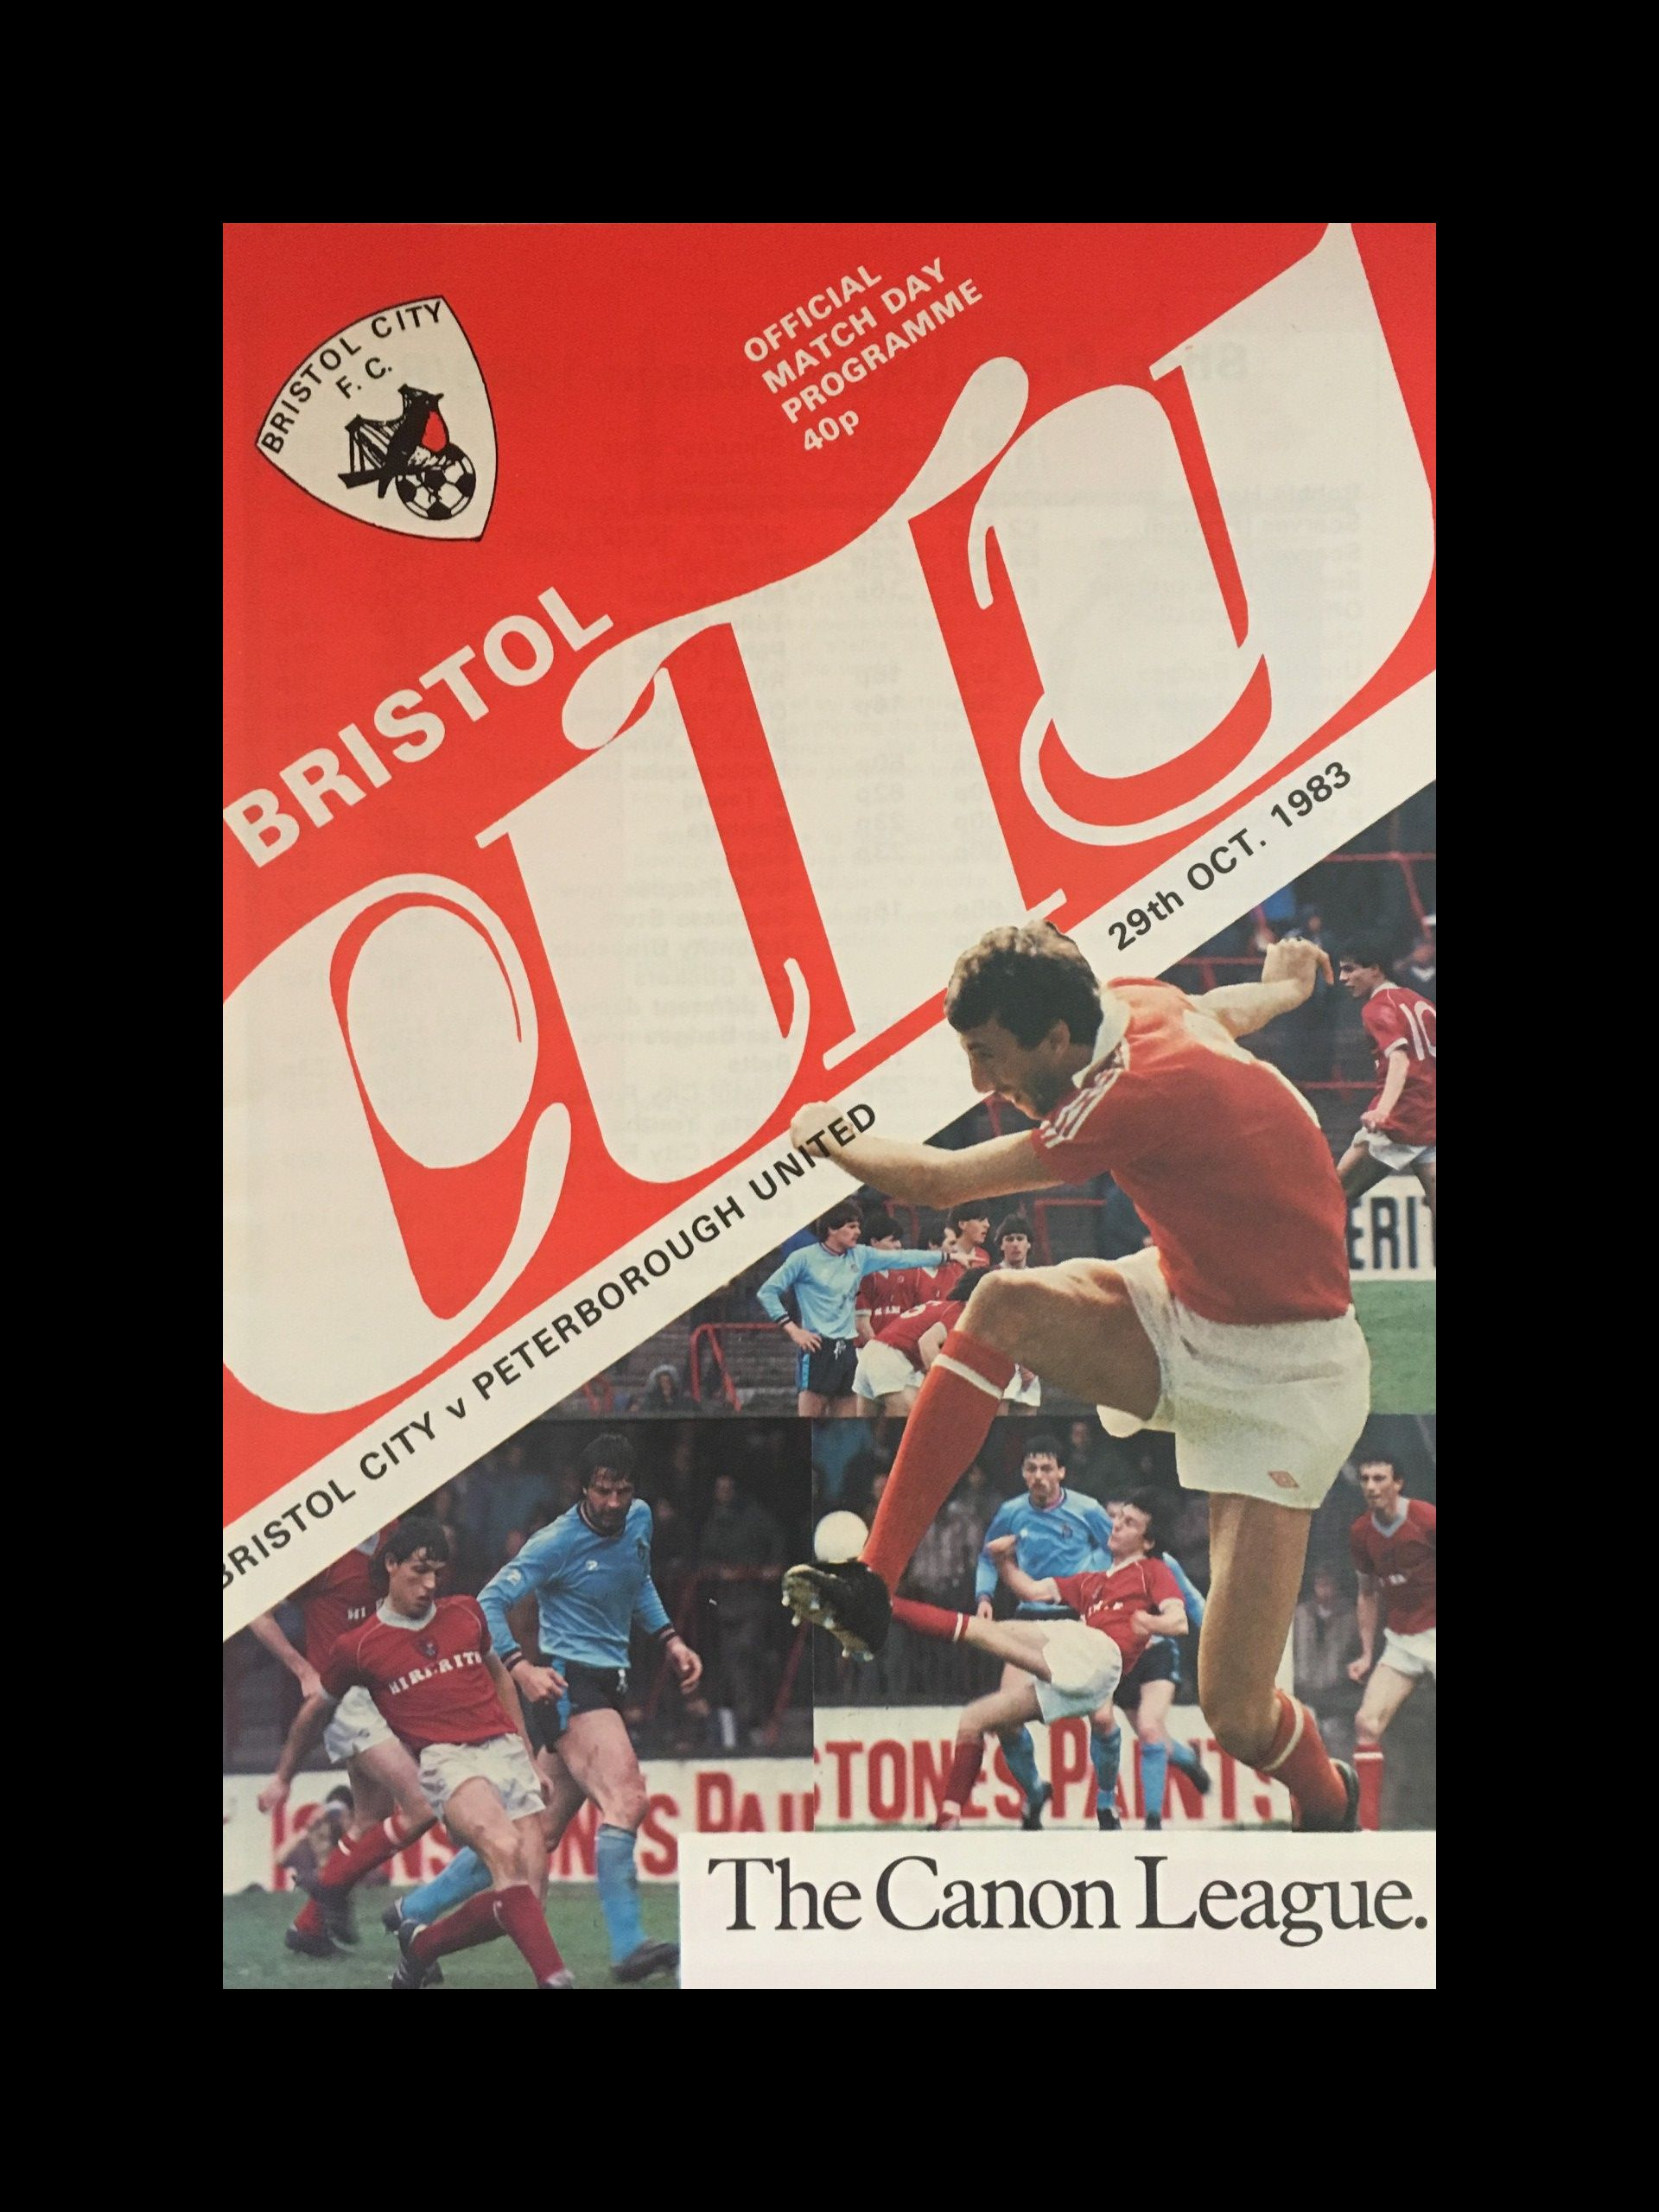 Bristol City v Peterborough United 29-10-83 Programme